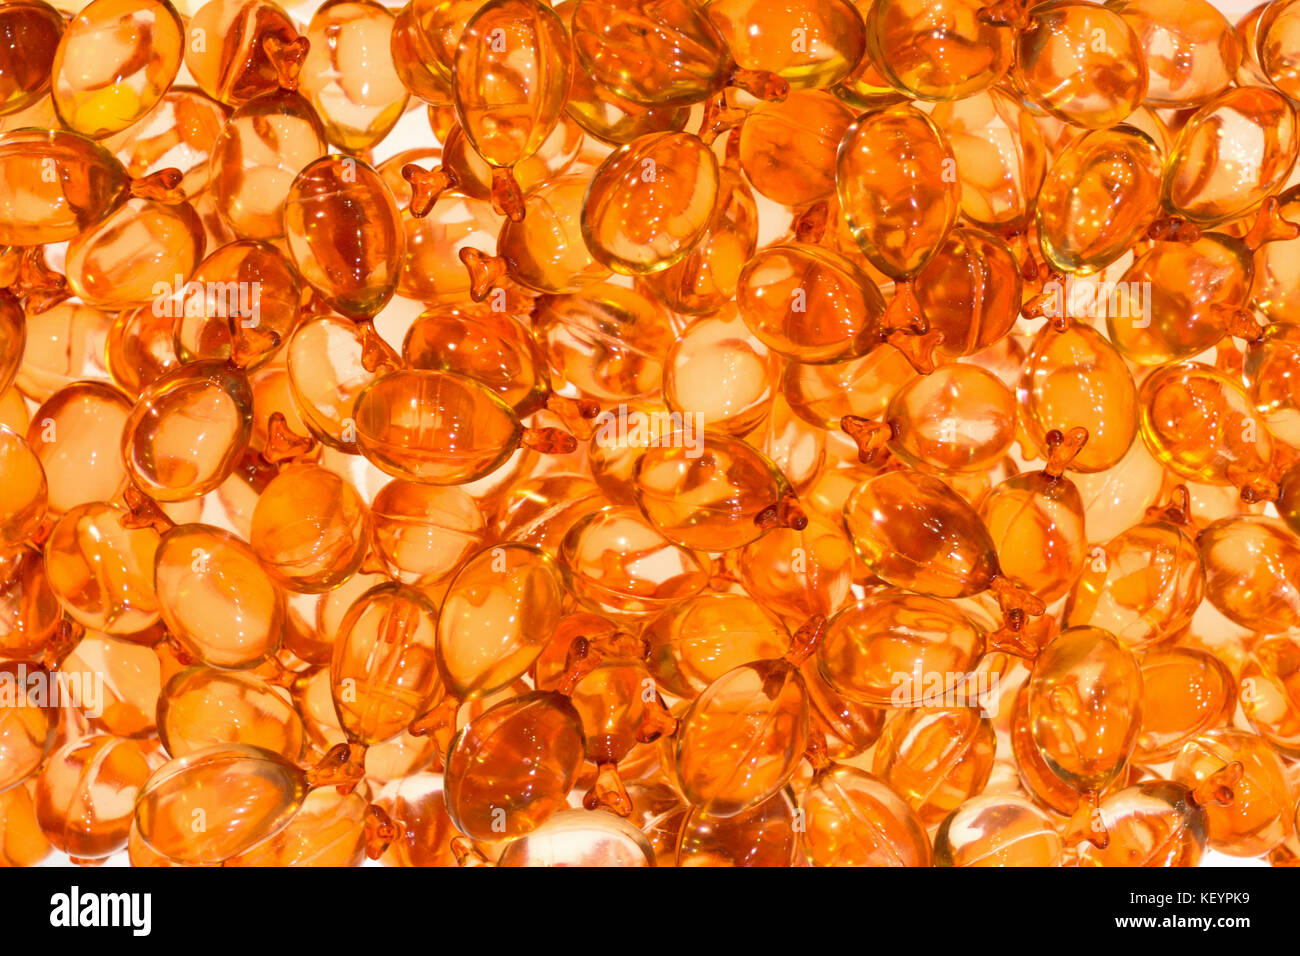 hair and skin vitamin serum in orange soft capsules, background and texture Stock Photo